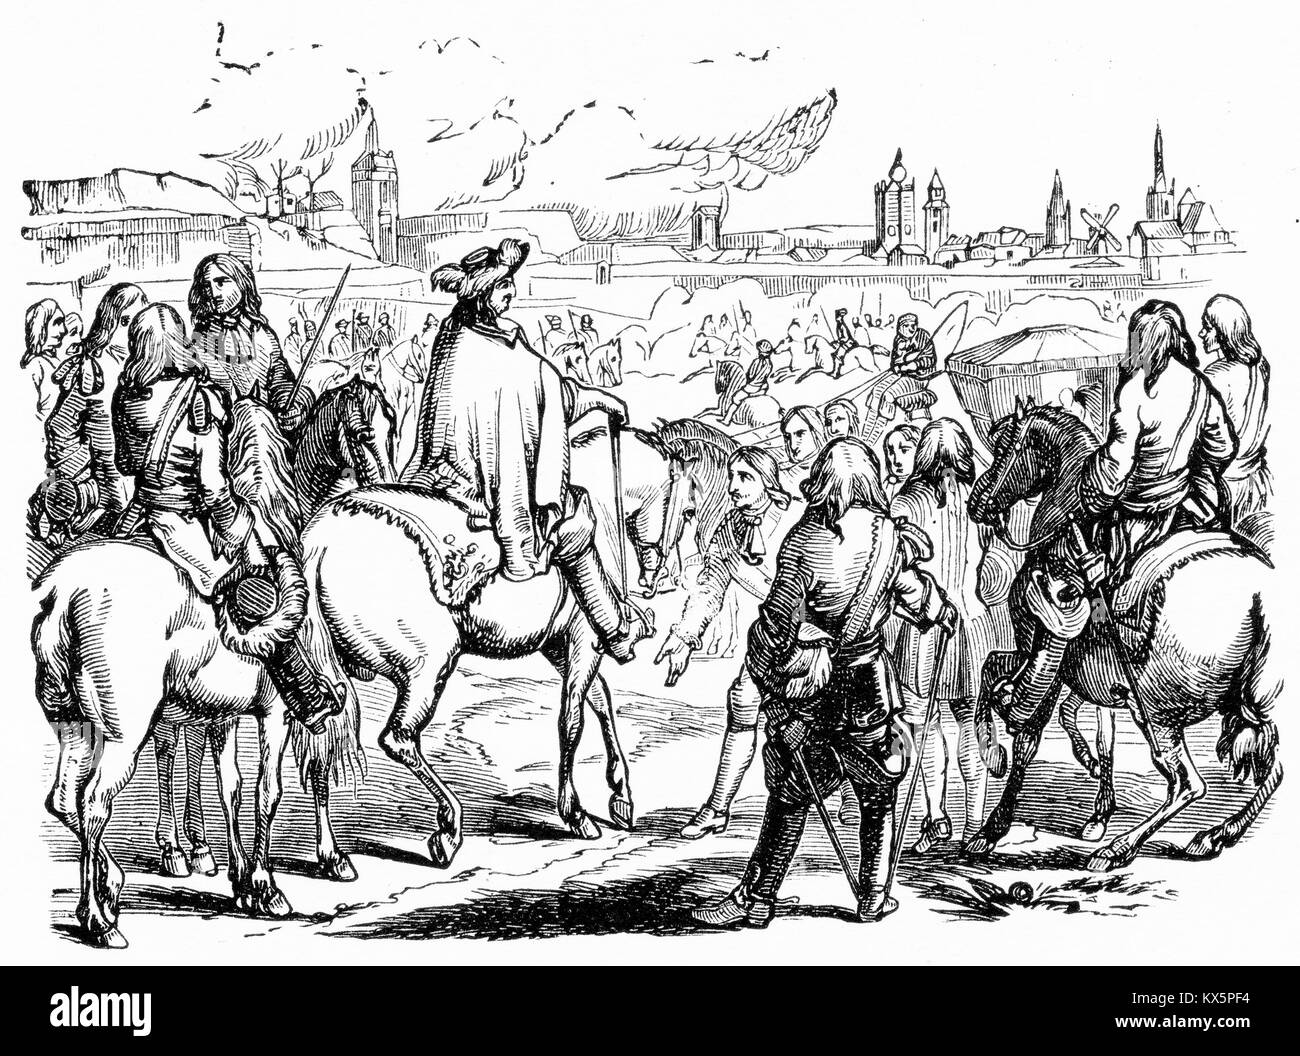 Engraving of Louis XIV of France directing a siege. From Louis XIV, by Jacob Abbott, 1846. - Stock Image